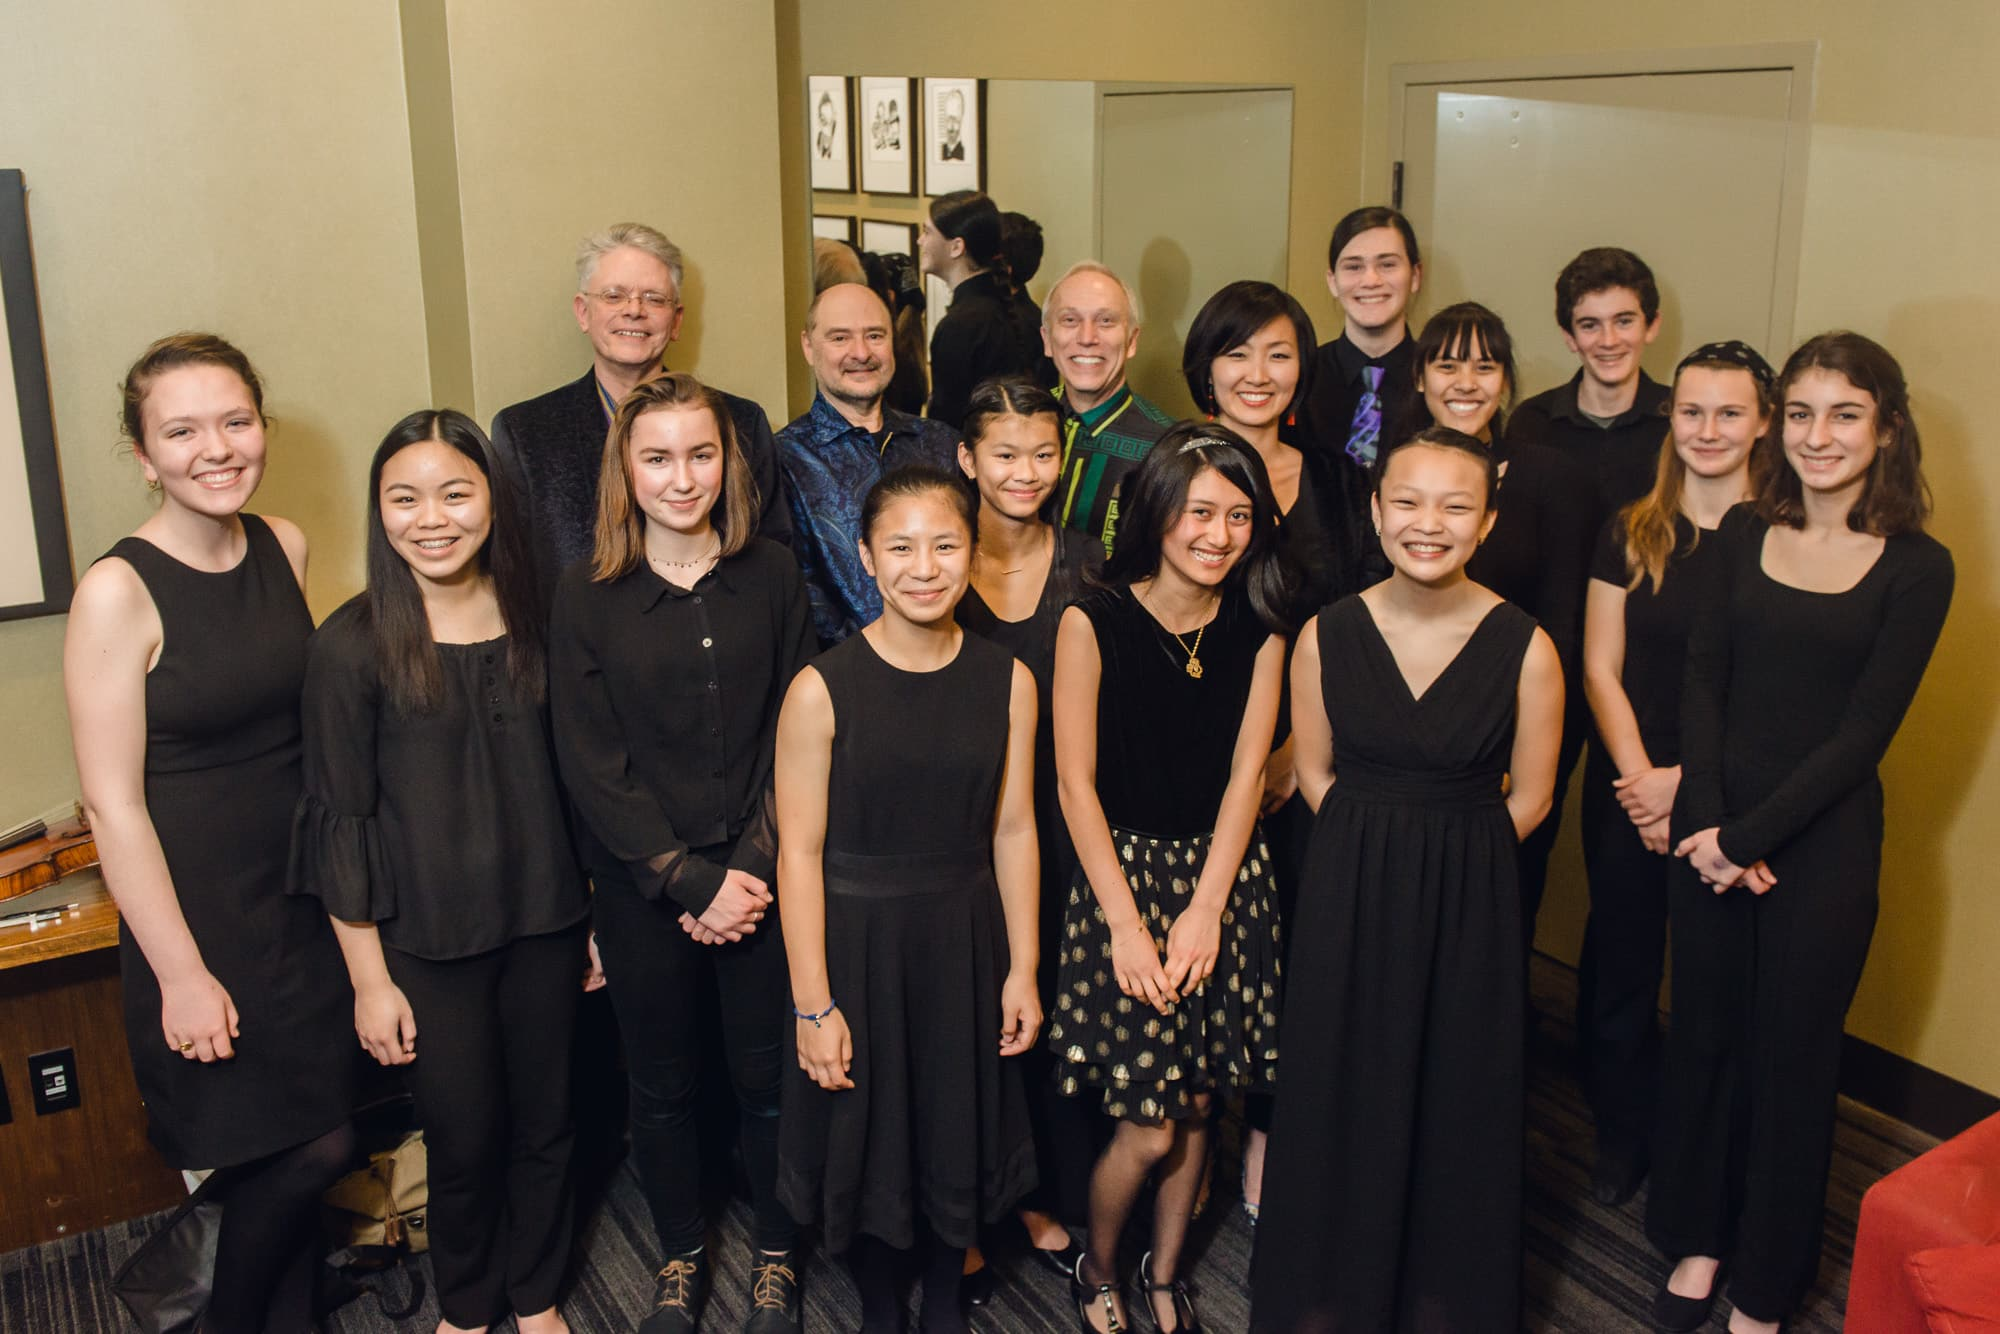 Kronos Quartet with students from Berkeley and Oakland, credit Lenny Gonzalez